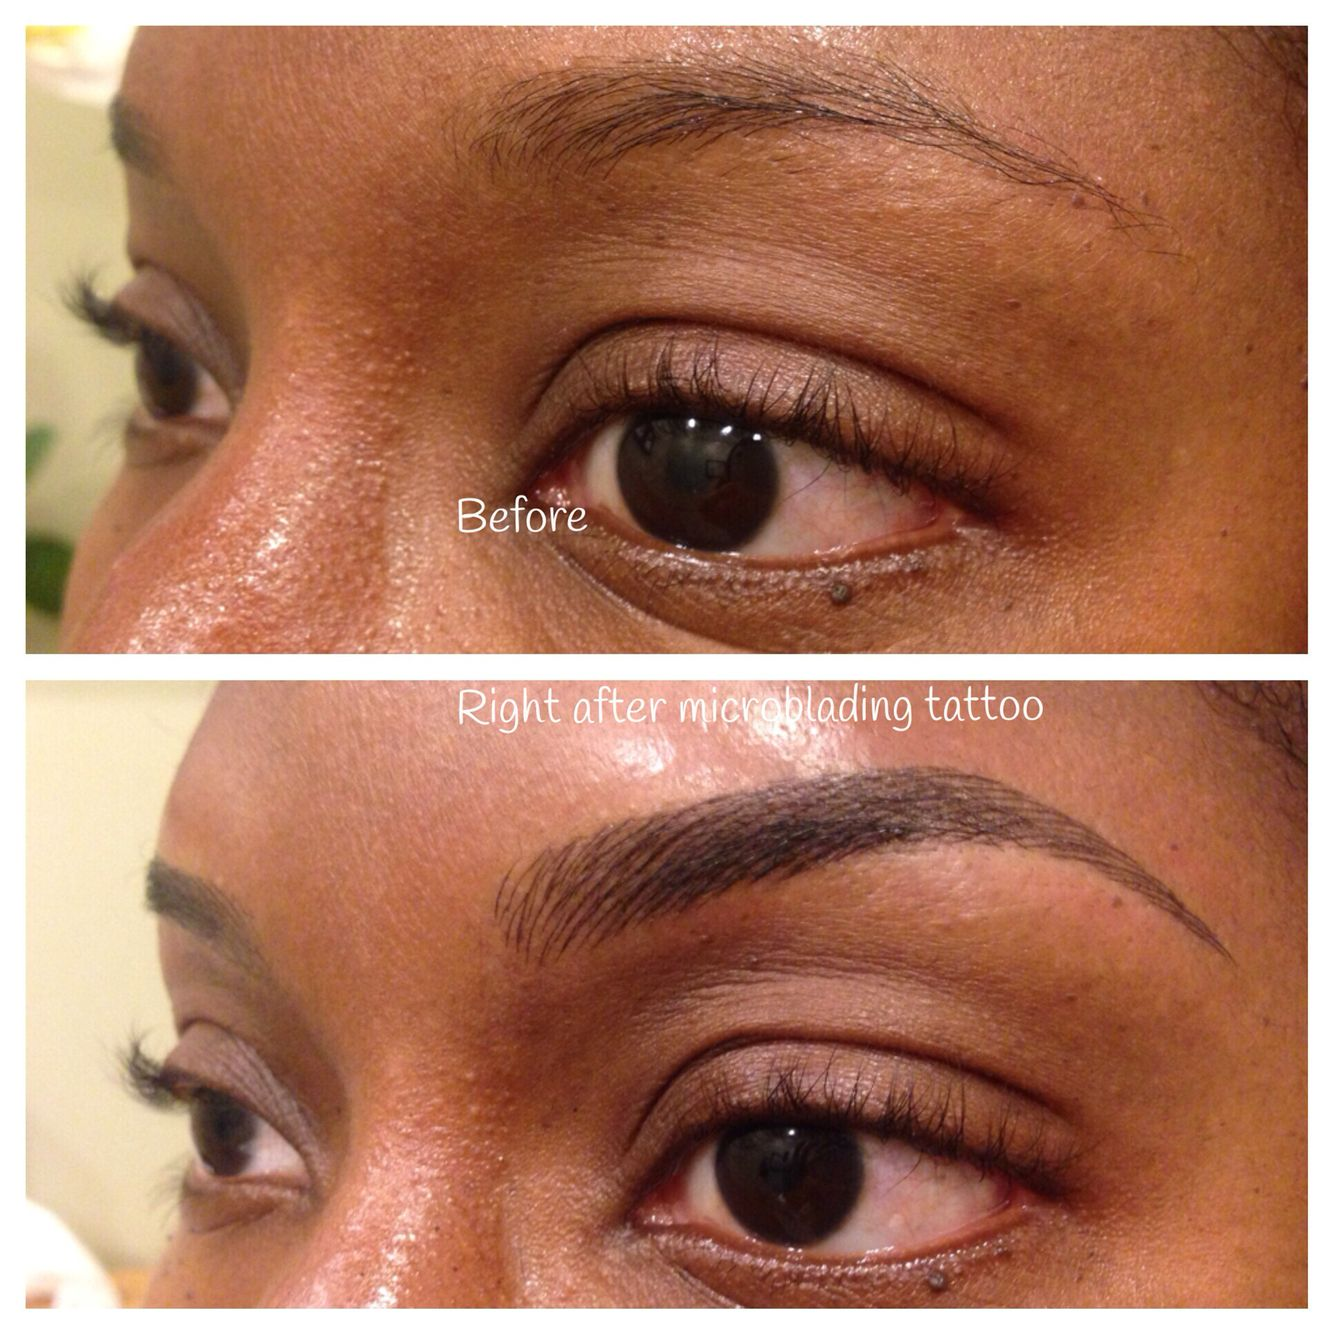 Eyebrow Tattoo Before And After: Before And After Microblading Which Is A Manual Tattoo